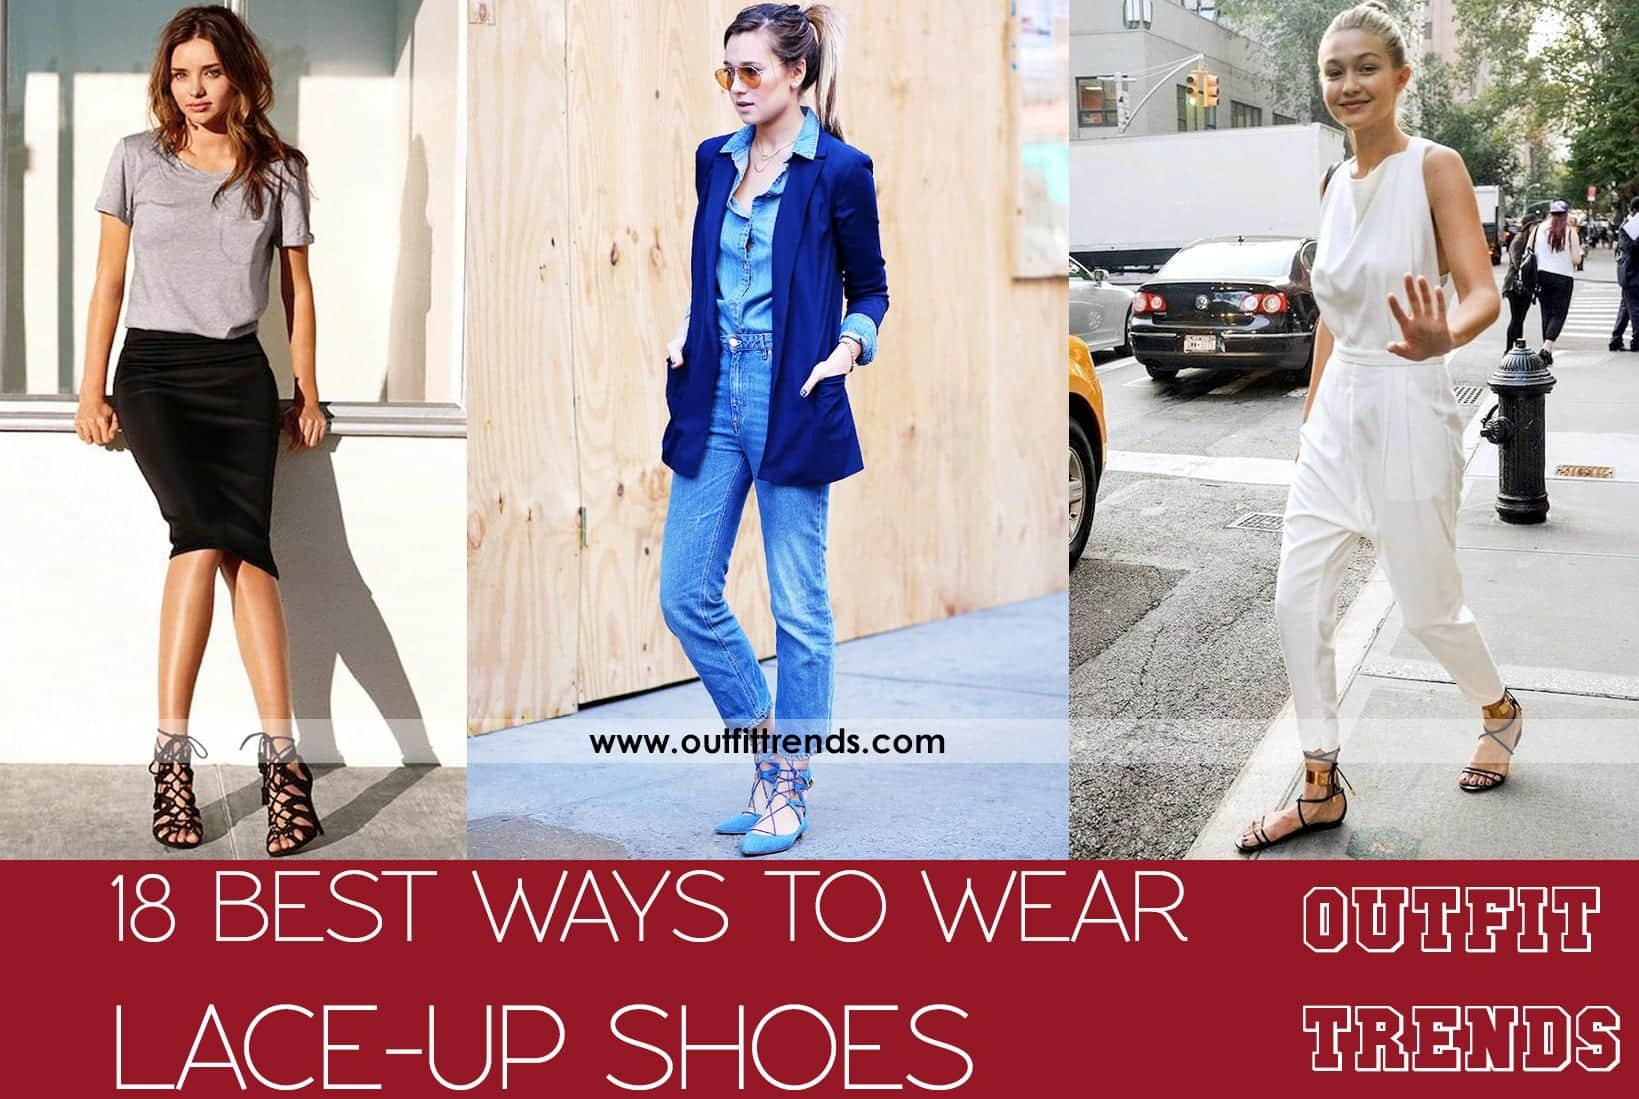 Outfits with Lace-up Shoes – 18 Ways to Wear Lace-up Shoes